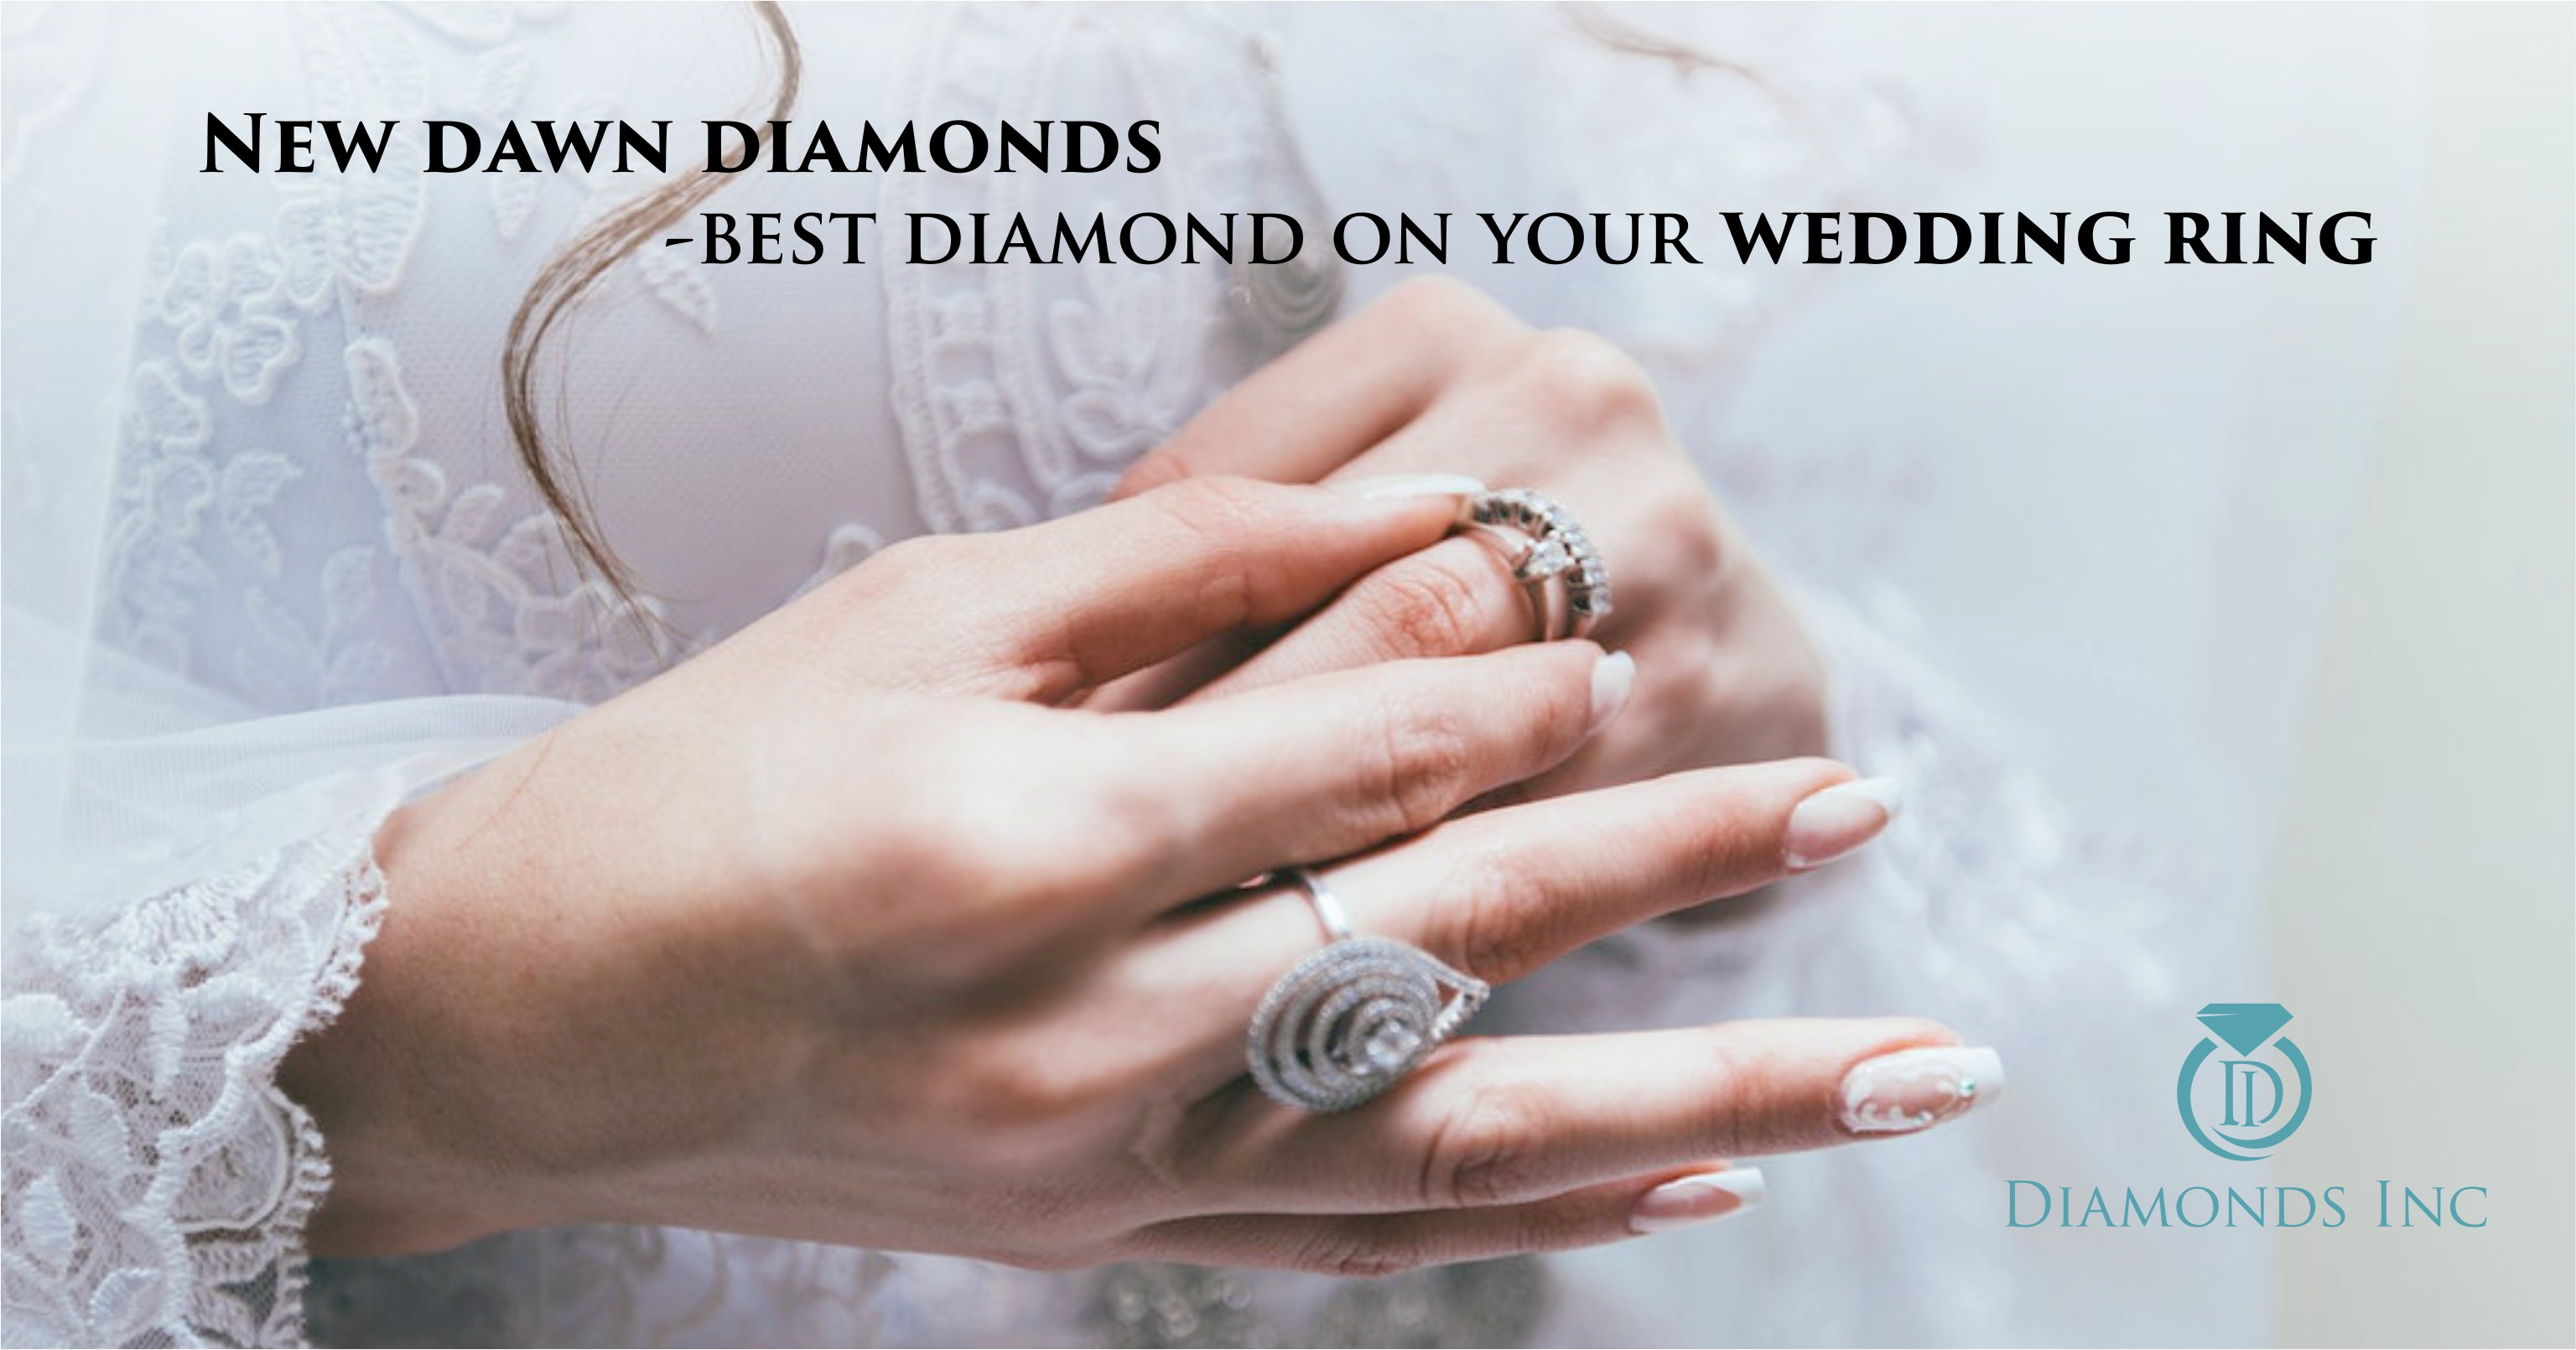 New Dawn Diamonds – The Best Diamond on Your Wedding Ring